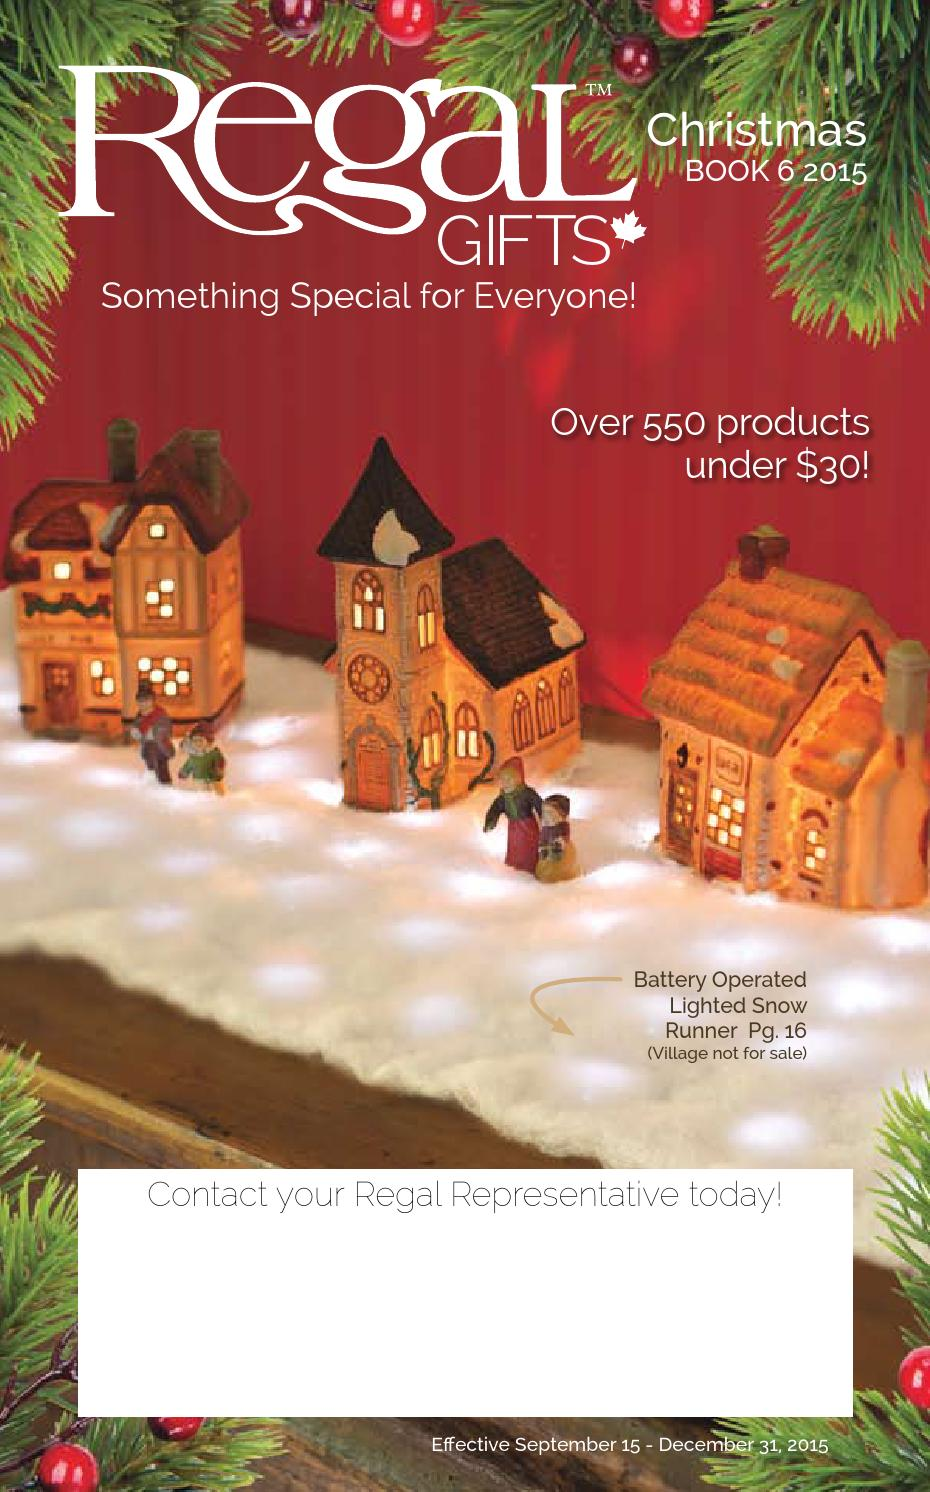 Regal Gifts Christmas Book 6 2015 by Regal Home & Gifts Inc. - issuu